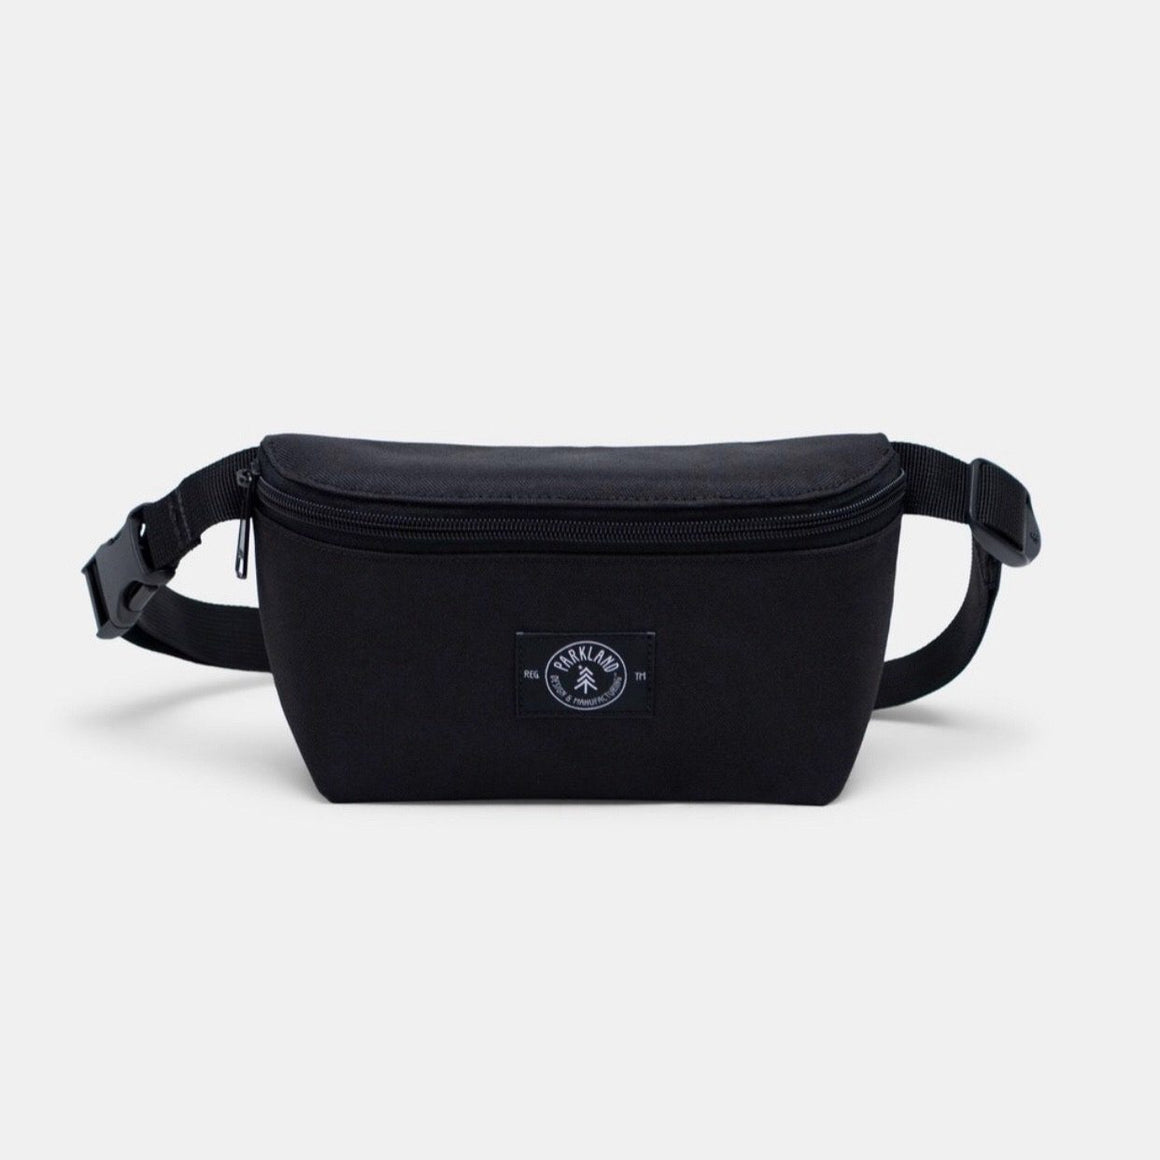 Parkland Bobbi Hip Pack - Black Hip Pack Parkland